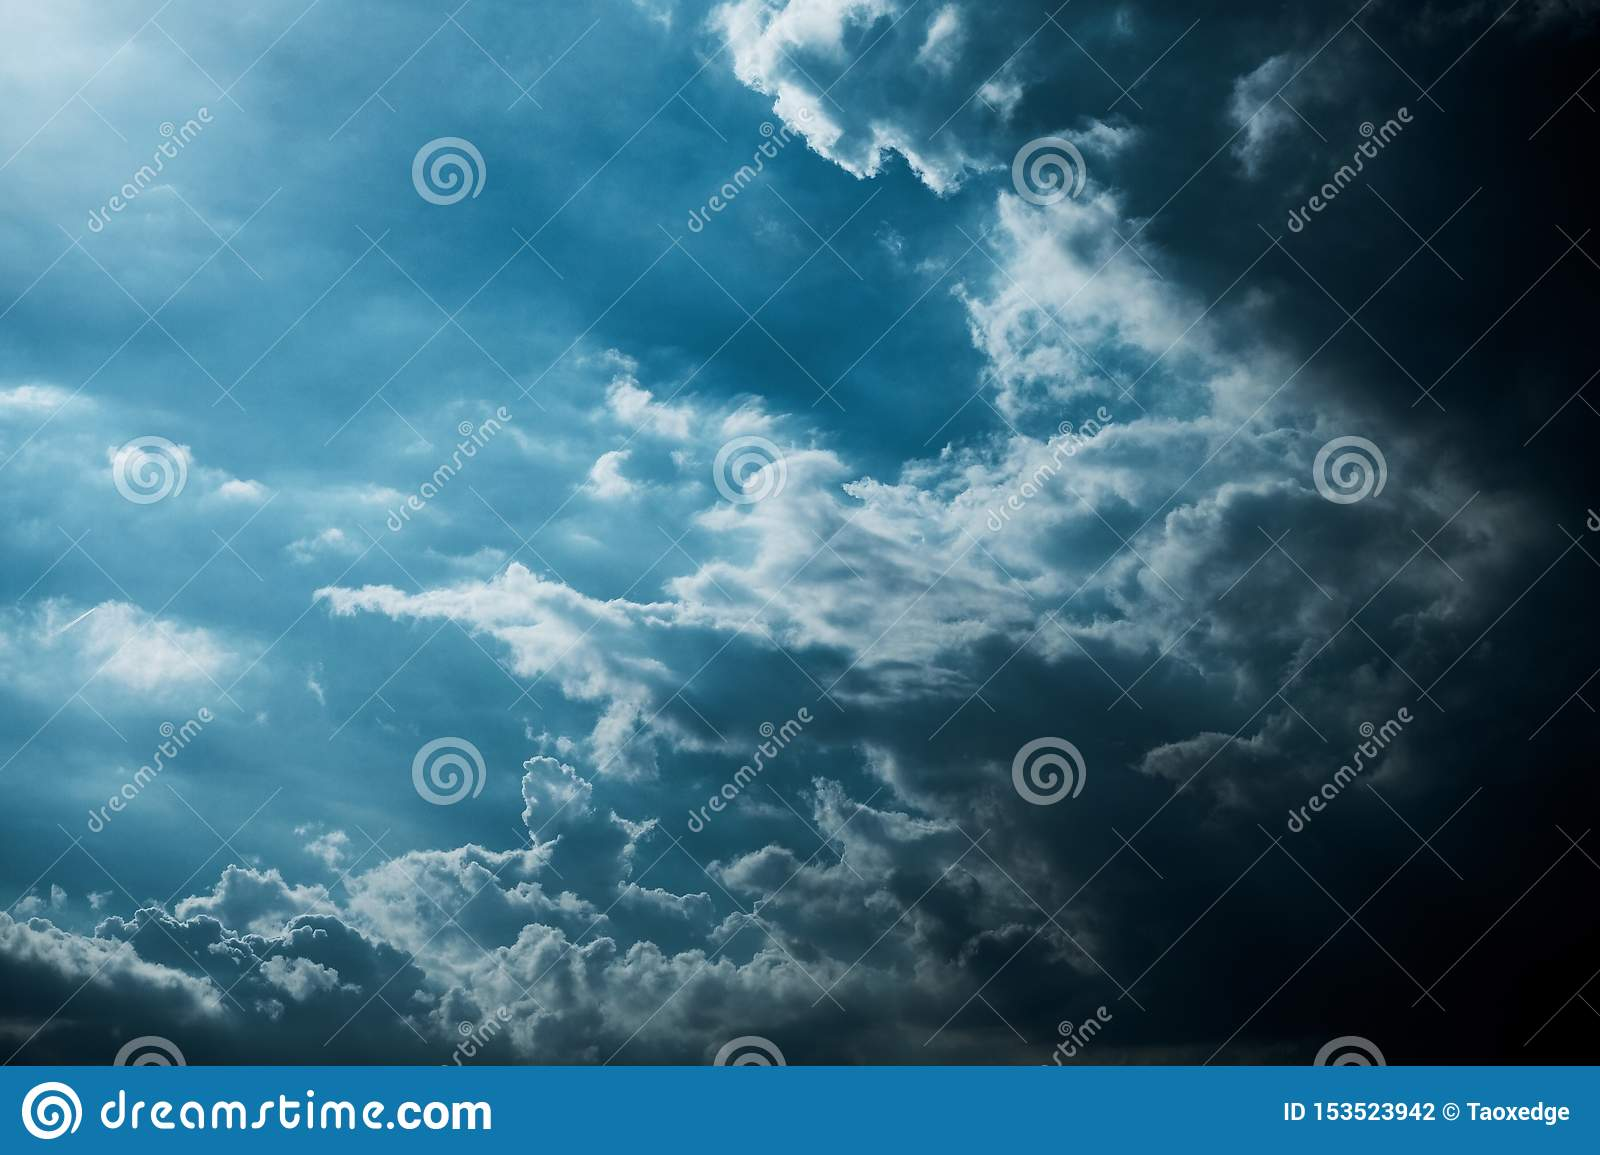 Darkness cloud background ,raining cloud